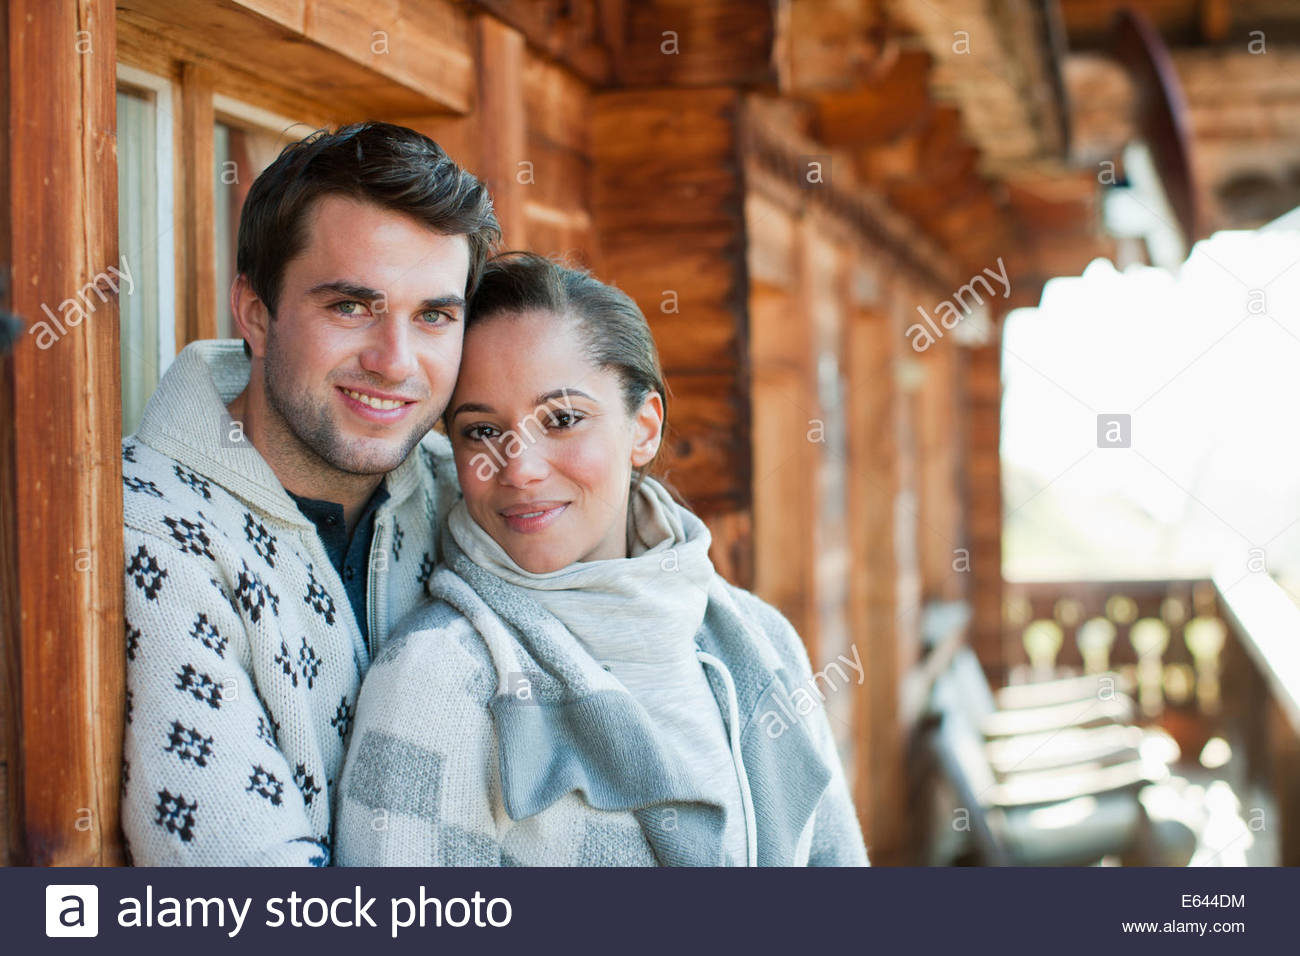 Portrait of smiling couple hugging on cabin porch - Stock Image